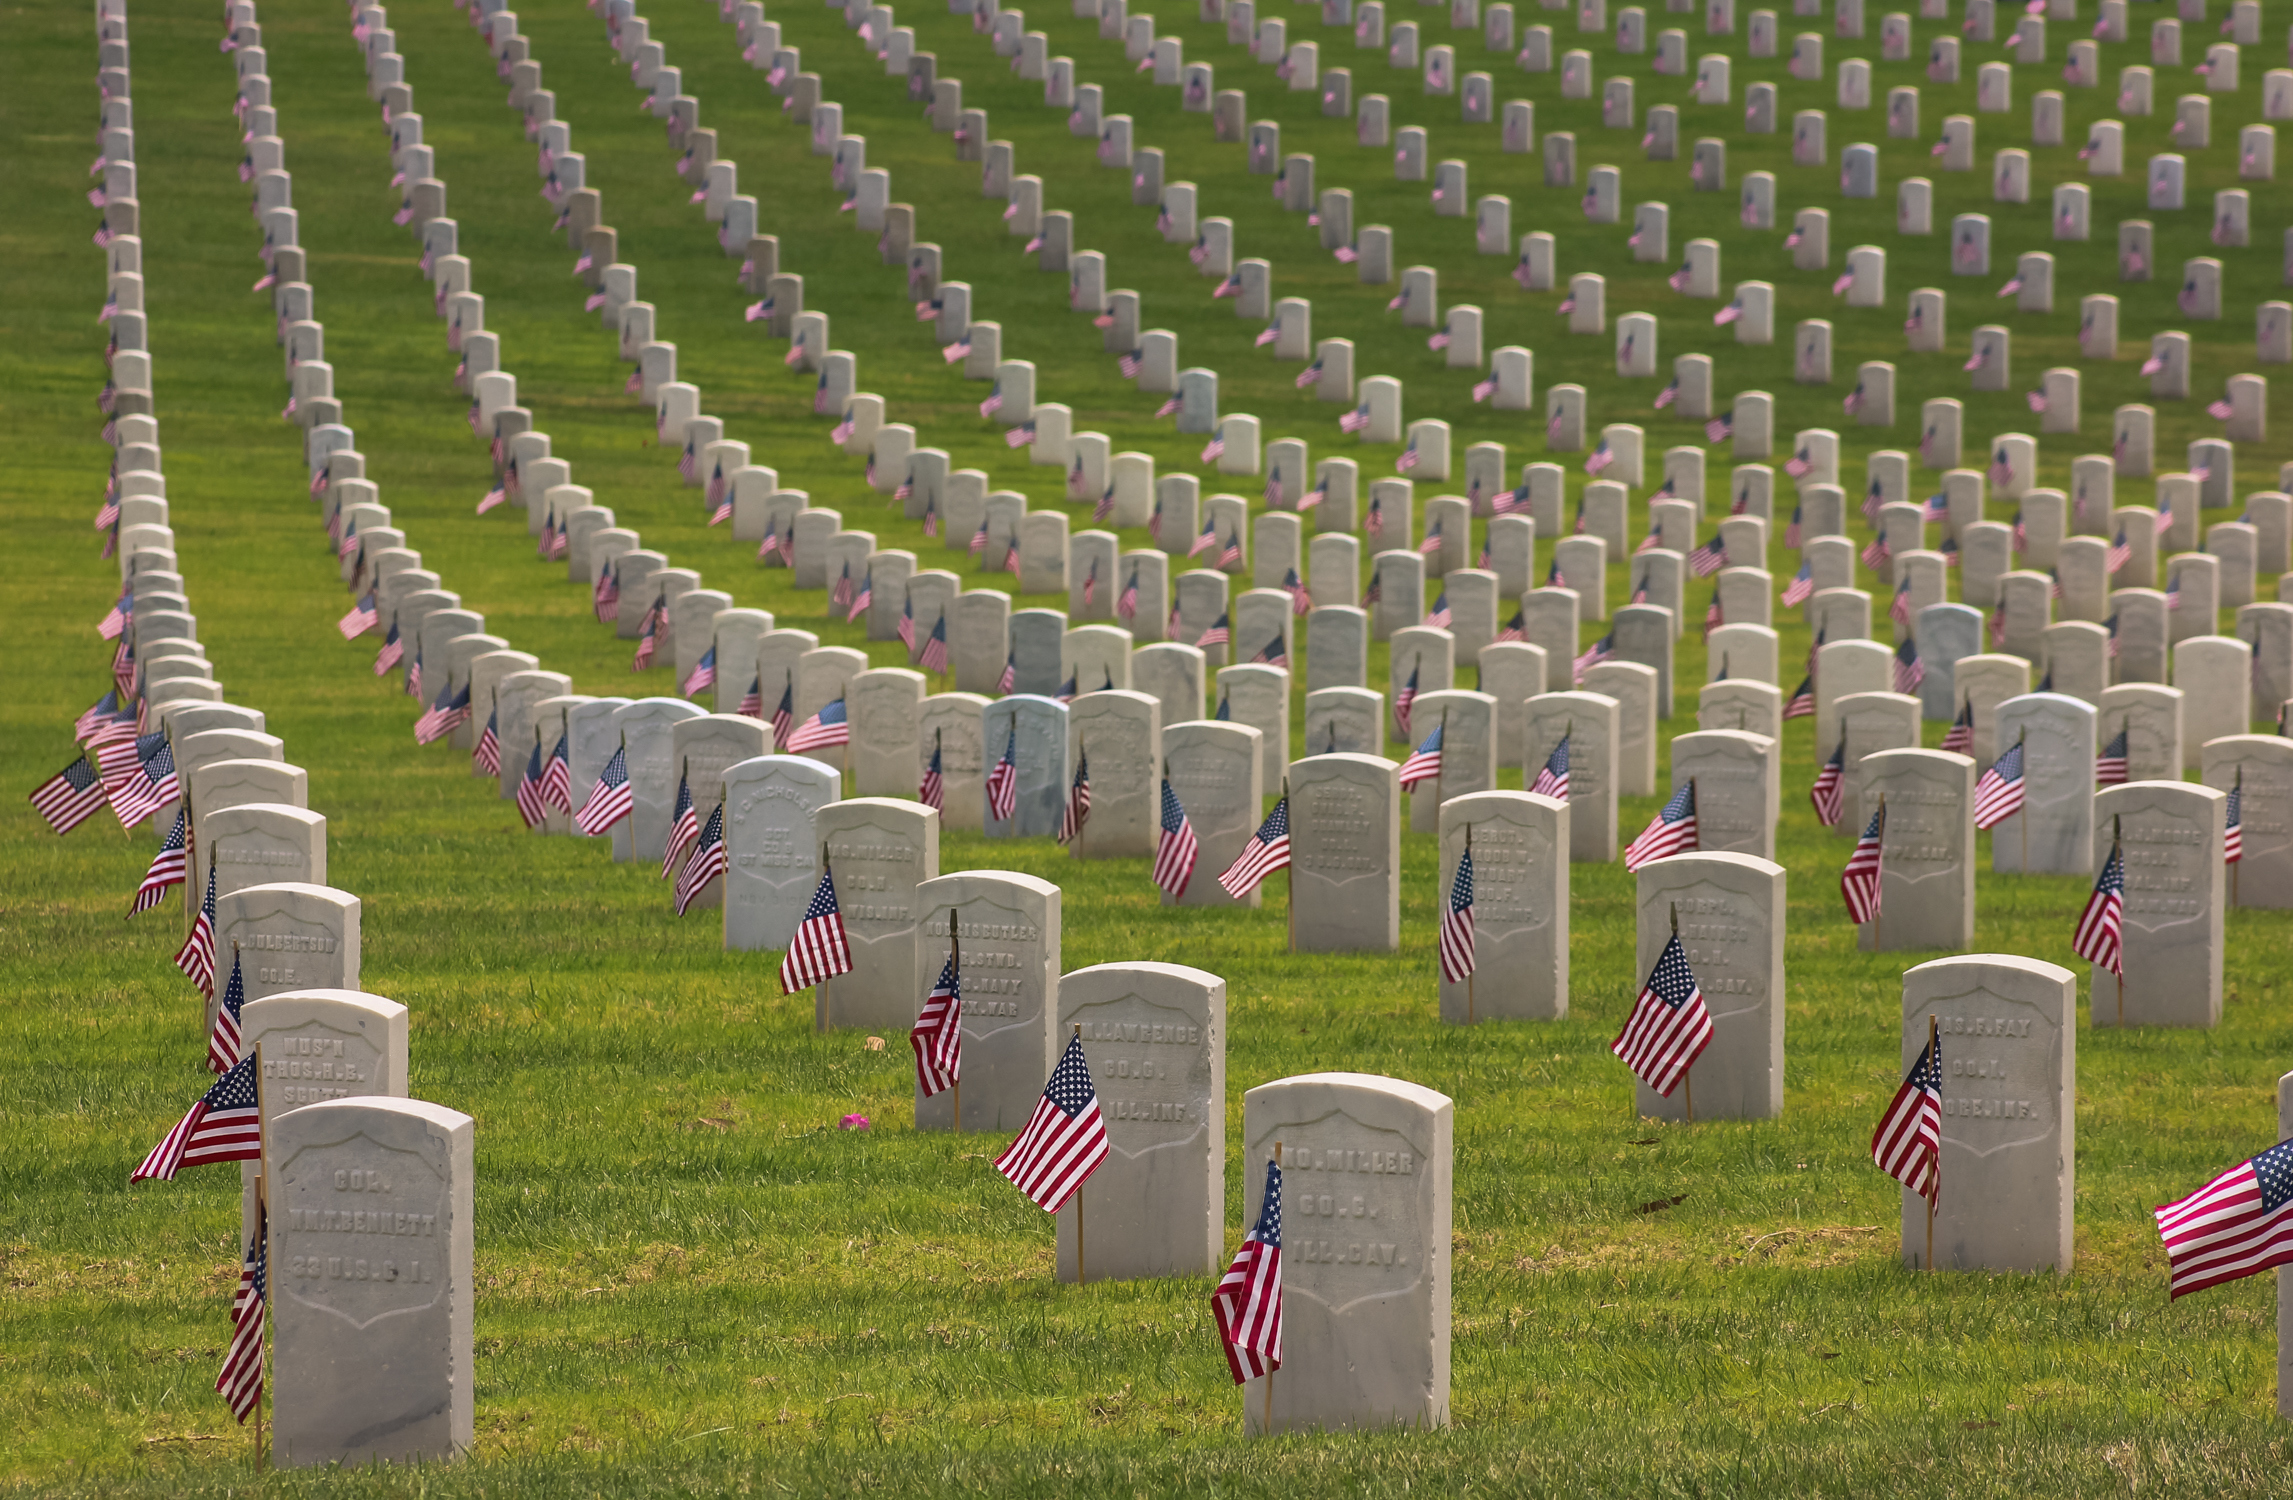 What is Memorial Day and do we celebrate it in the UK?